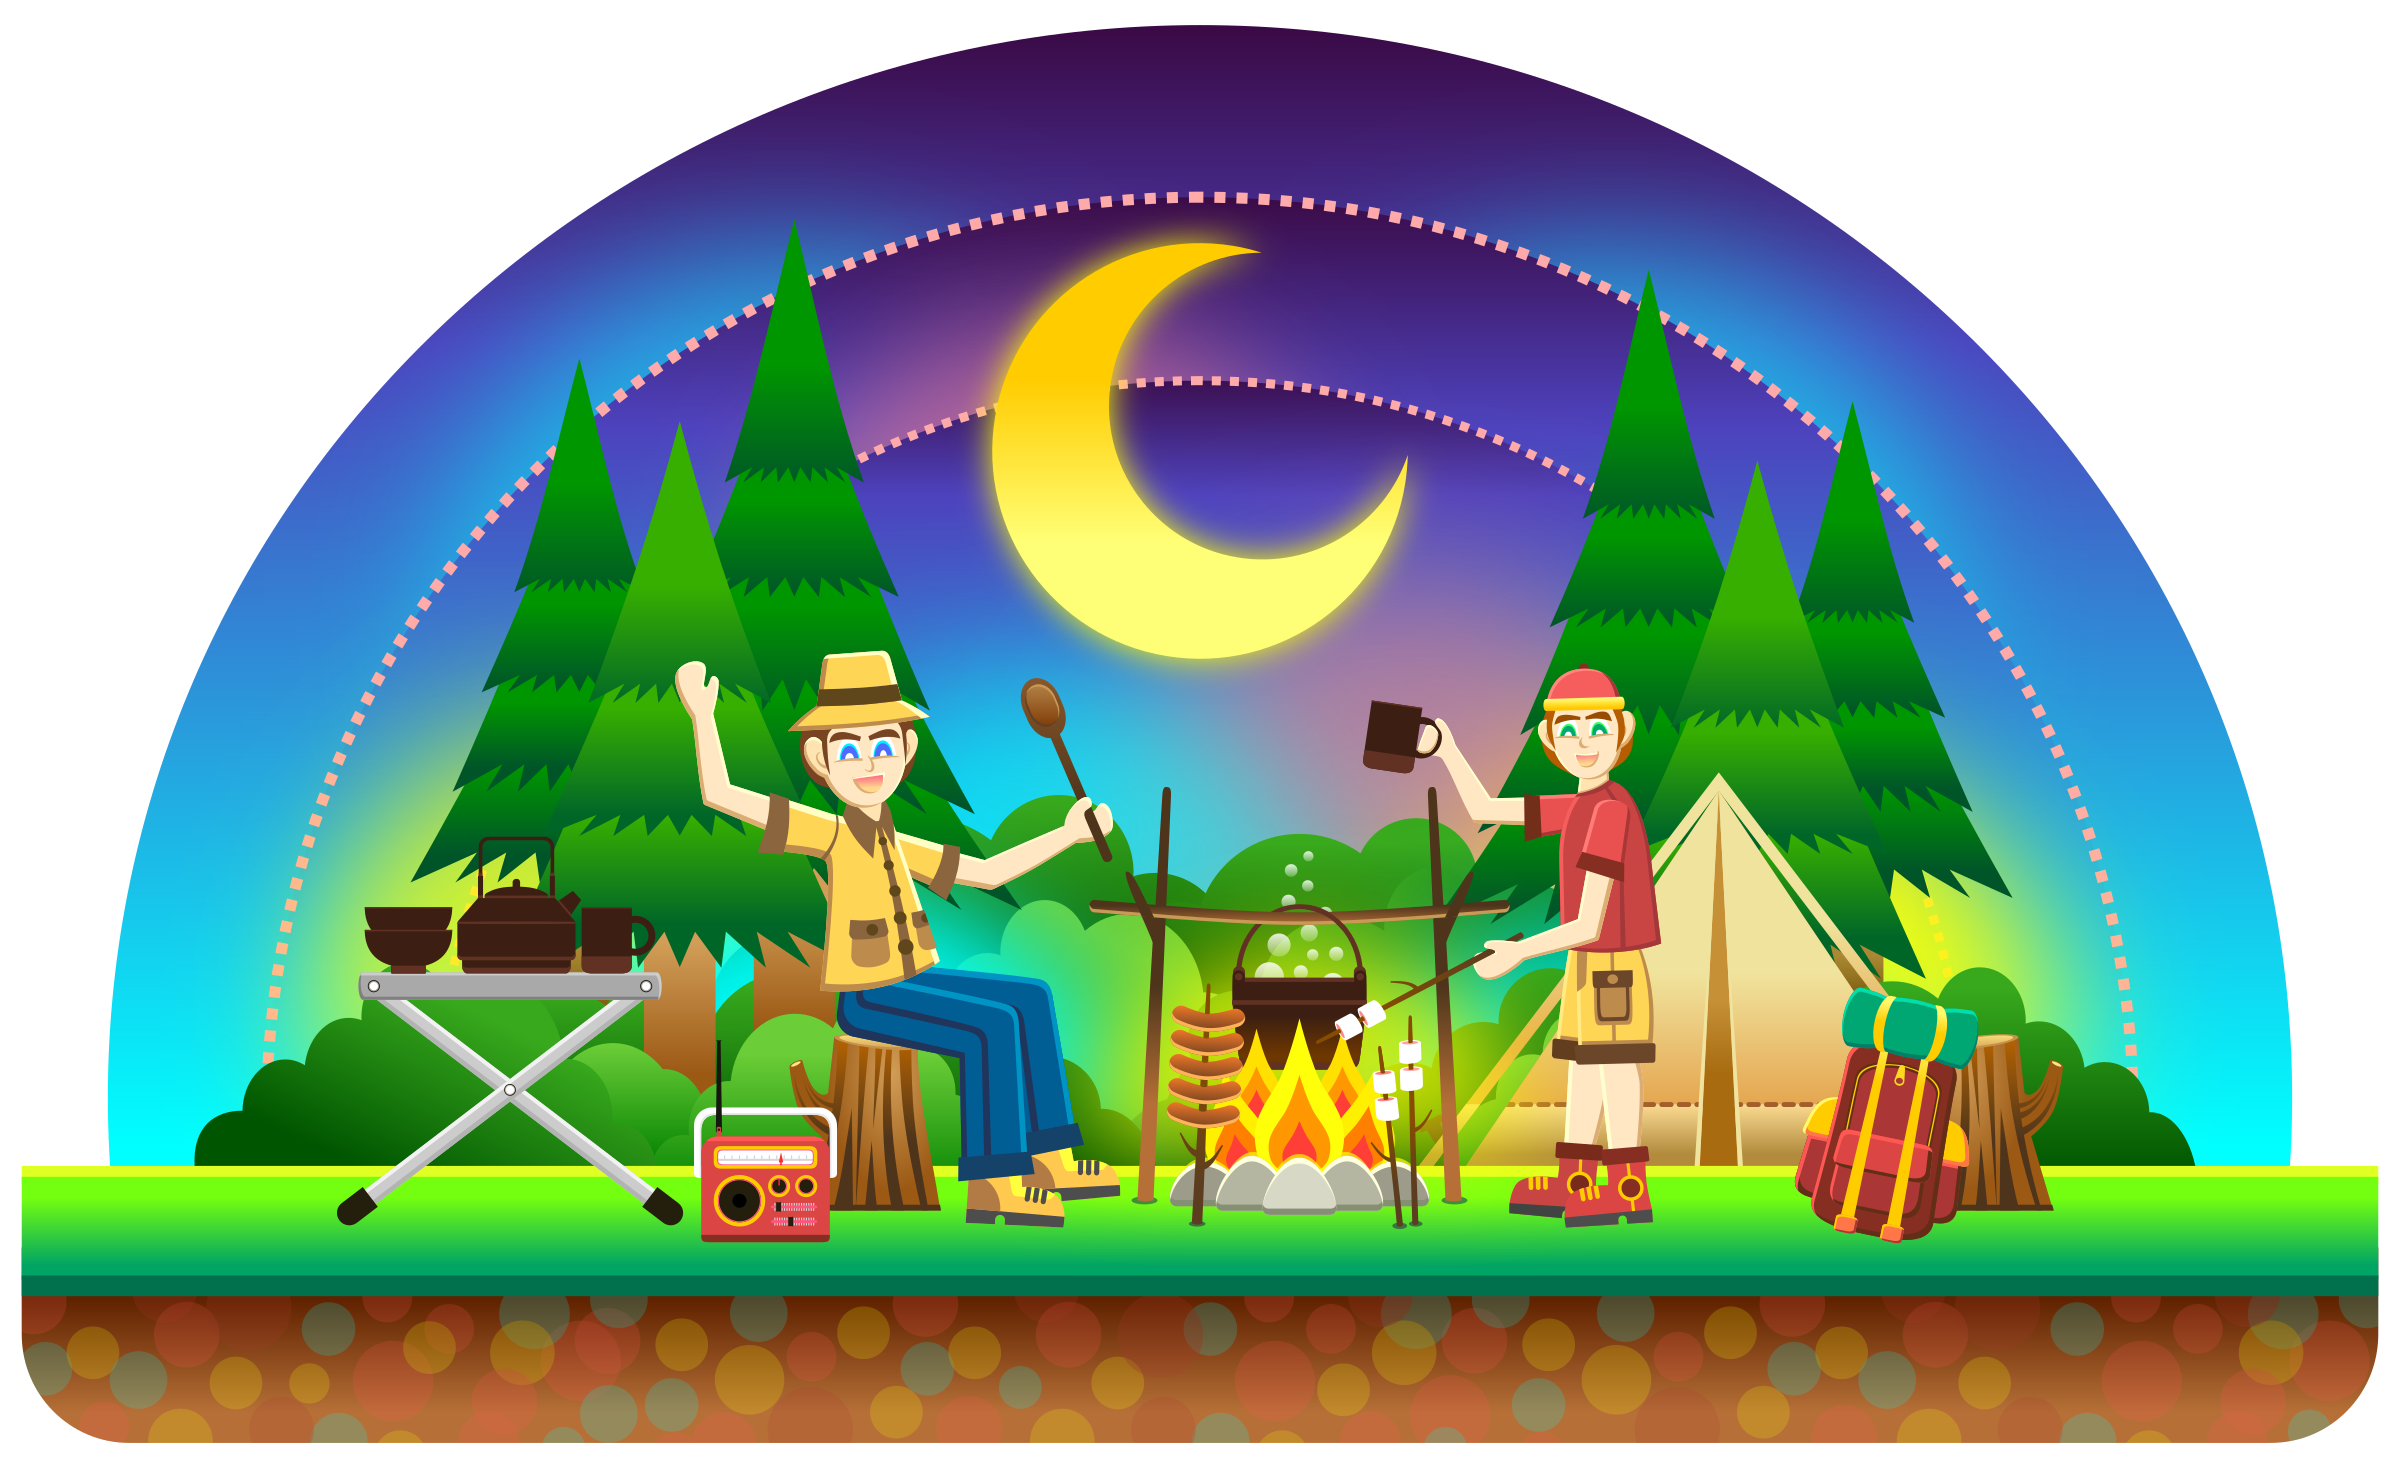 Camping Snowglobe vector clipart image - Free stock photo ...